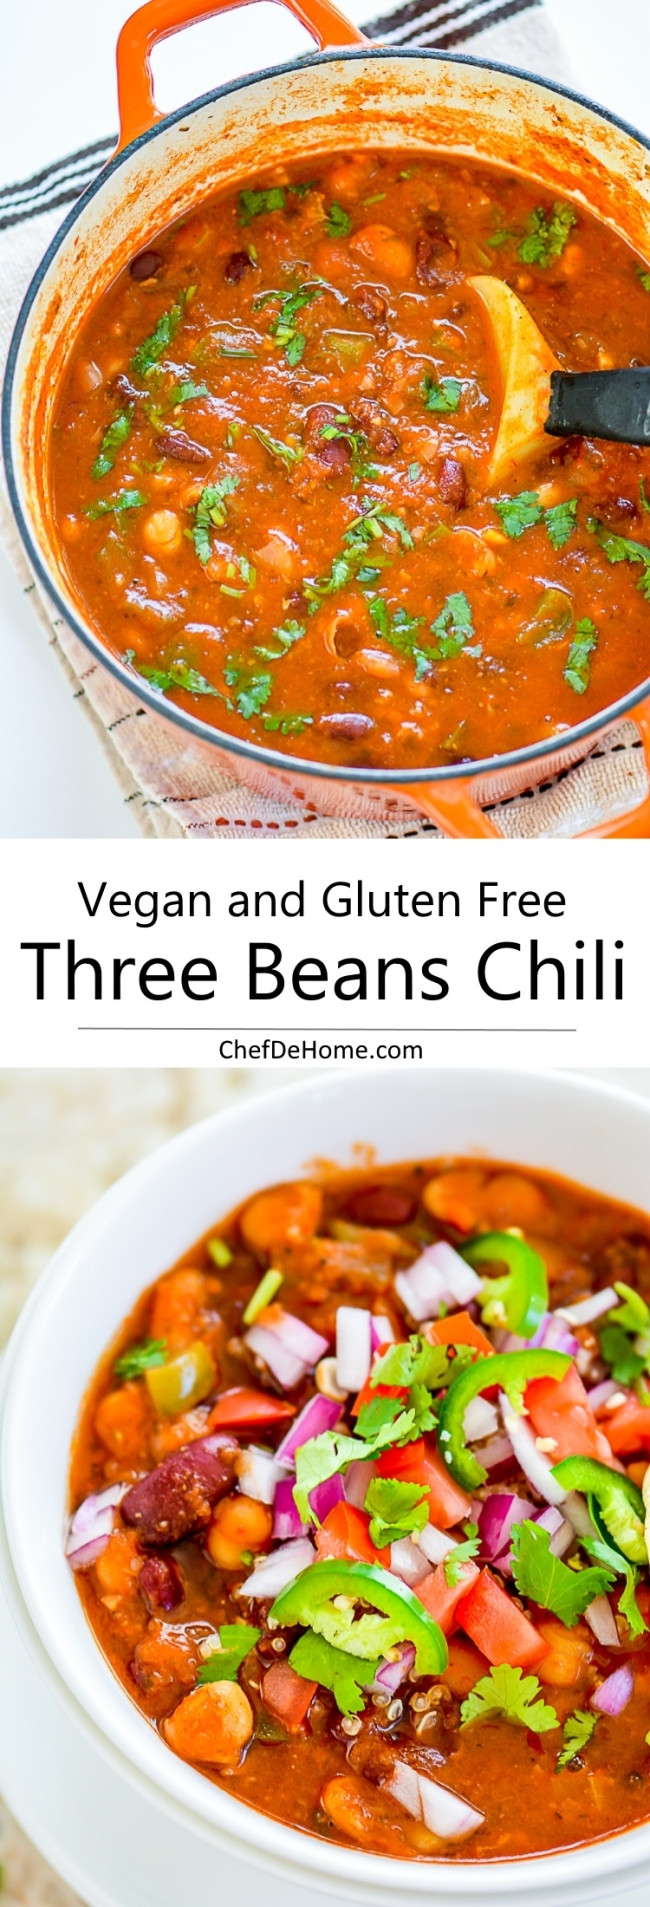 Vegetarian Chickpea Chili  Easy Ve arian Three Beans Chili with Chickpeas Recipe